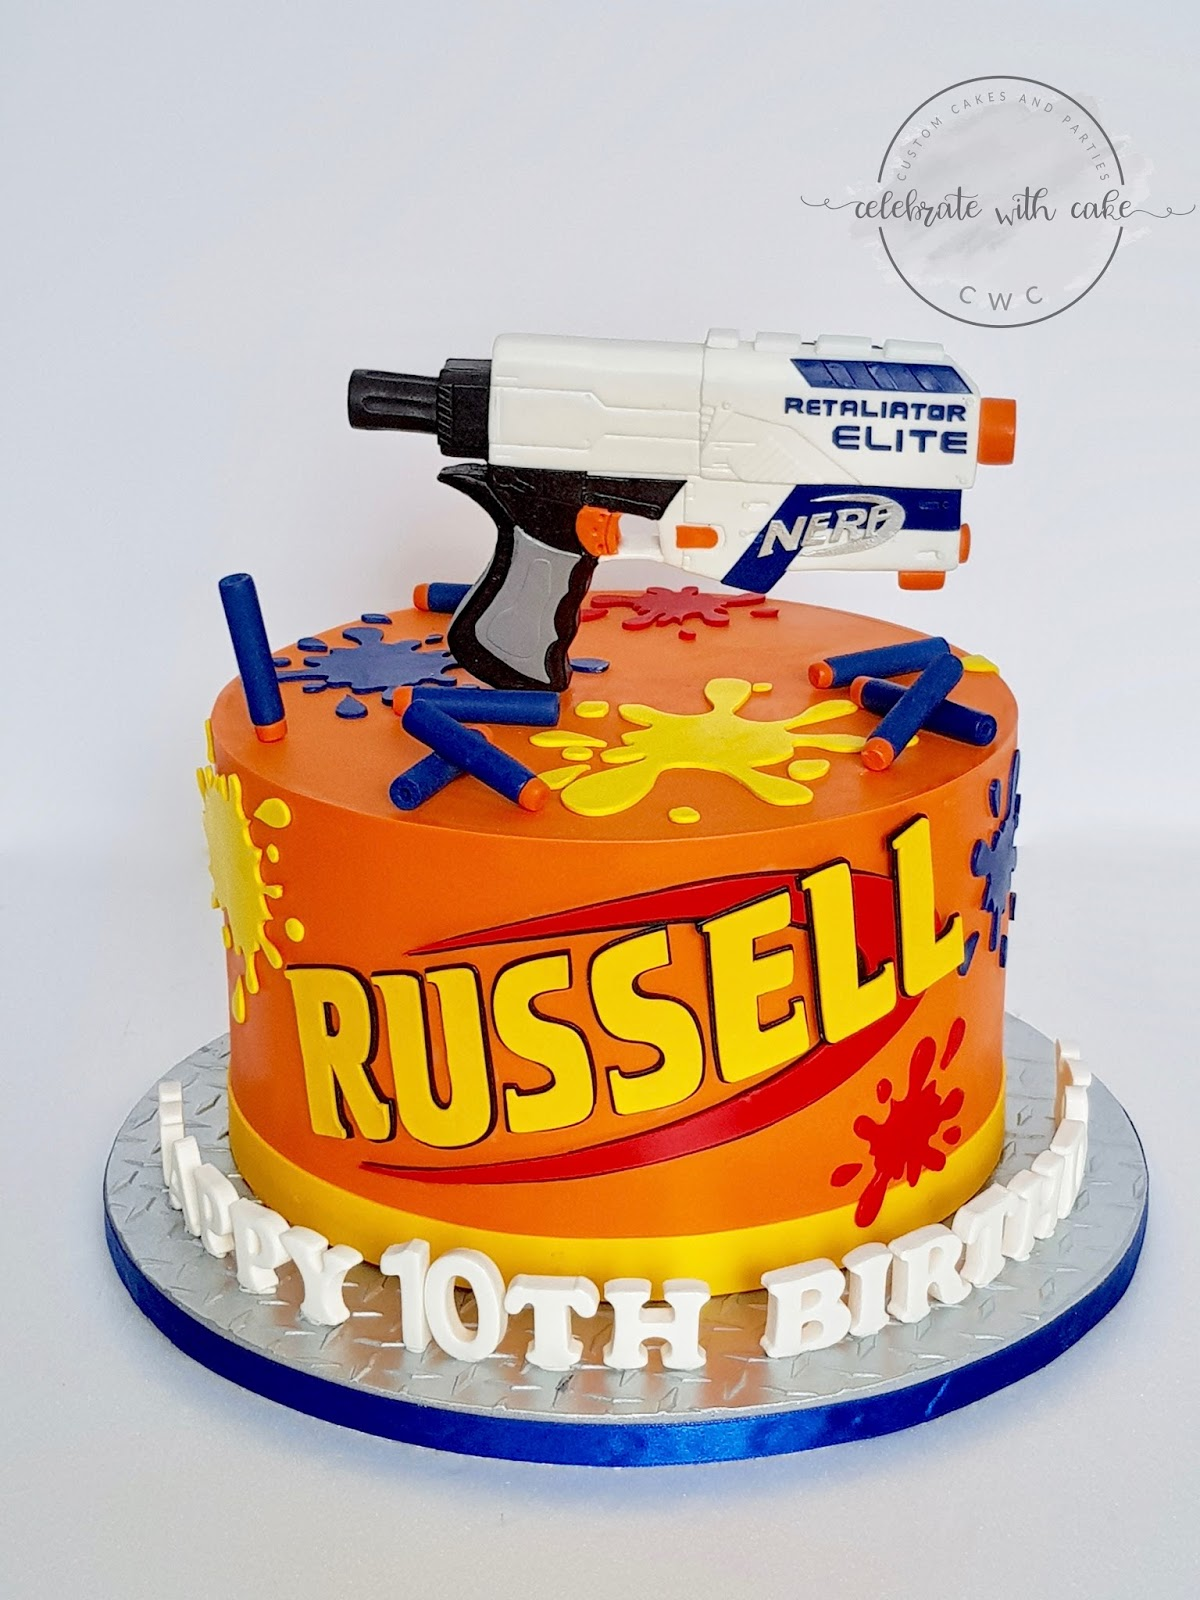 Outstanding Celebrate With Cake Nerf Gun Retaliator Cake Personalised Birthday Cards Veneteletsinfo